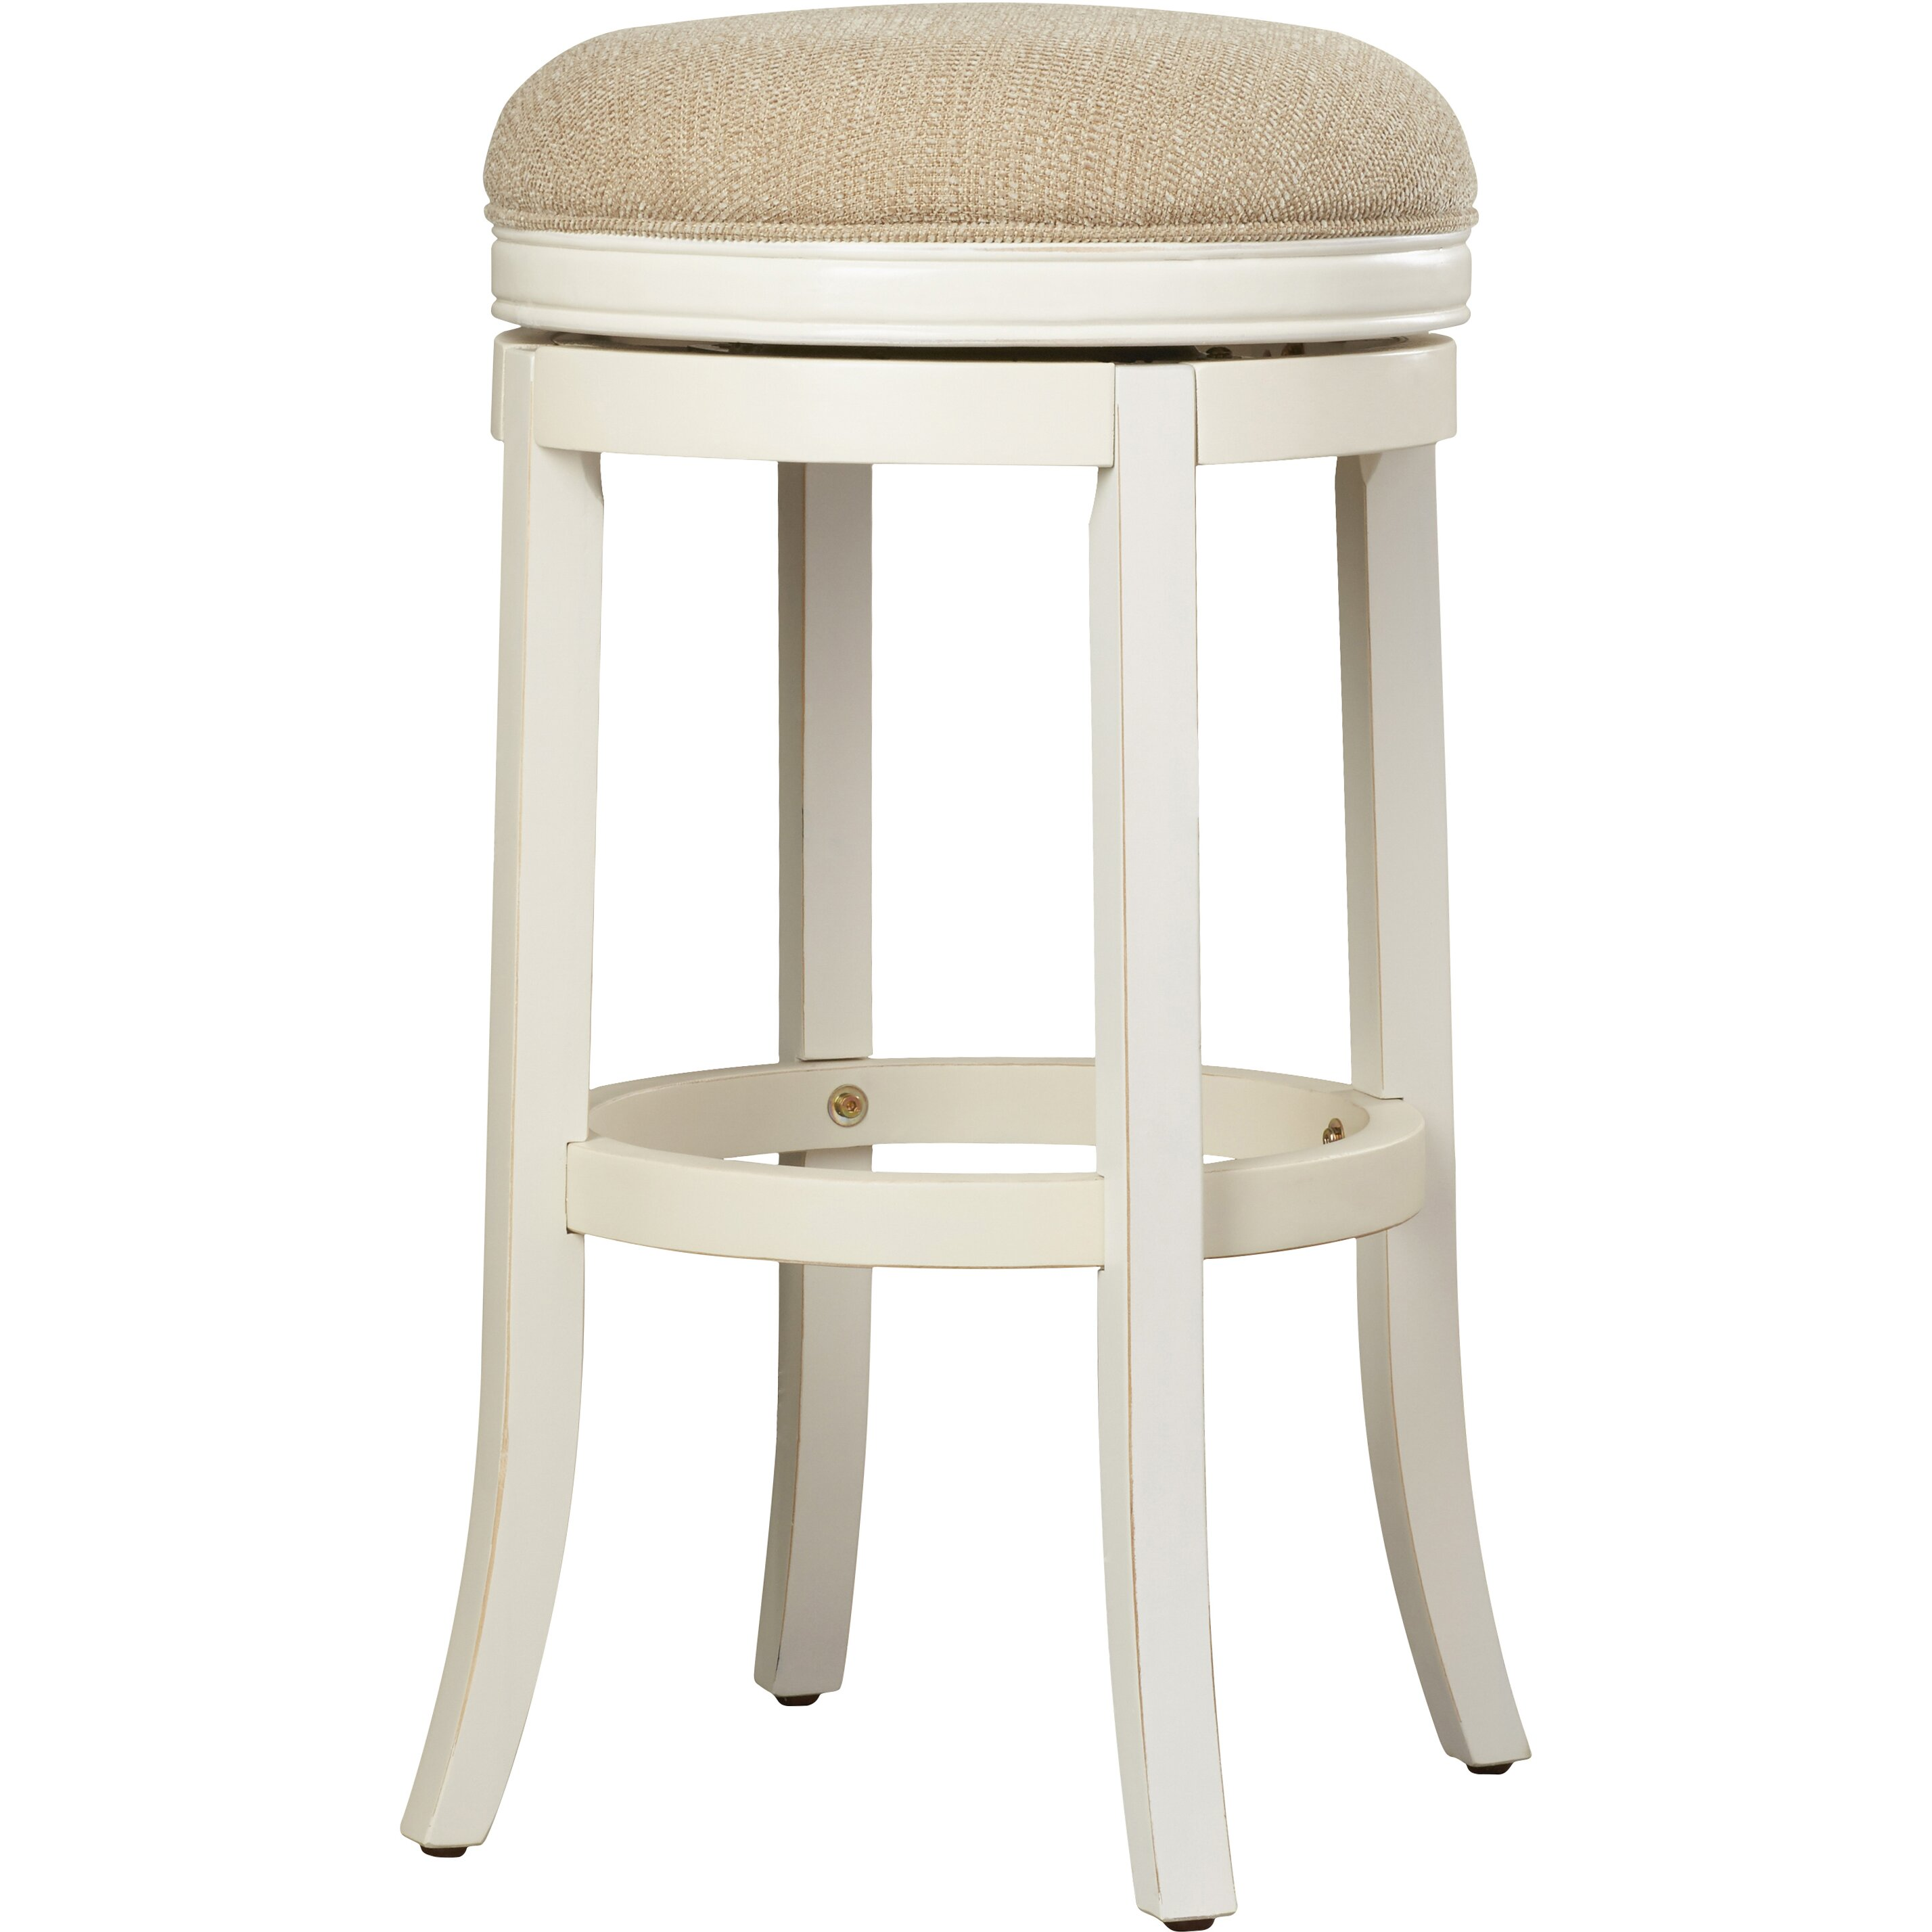 awesome alcott inspiring com uncategorized bar stools within stool in empire bench with indoor farmington images trent of stackable or design reviews outdoor full inside love hill youll wayfair swivel size austin on trendy quality